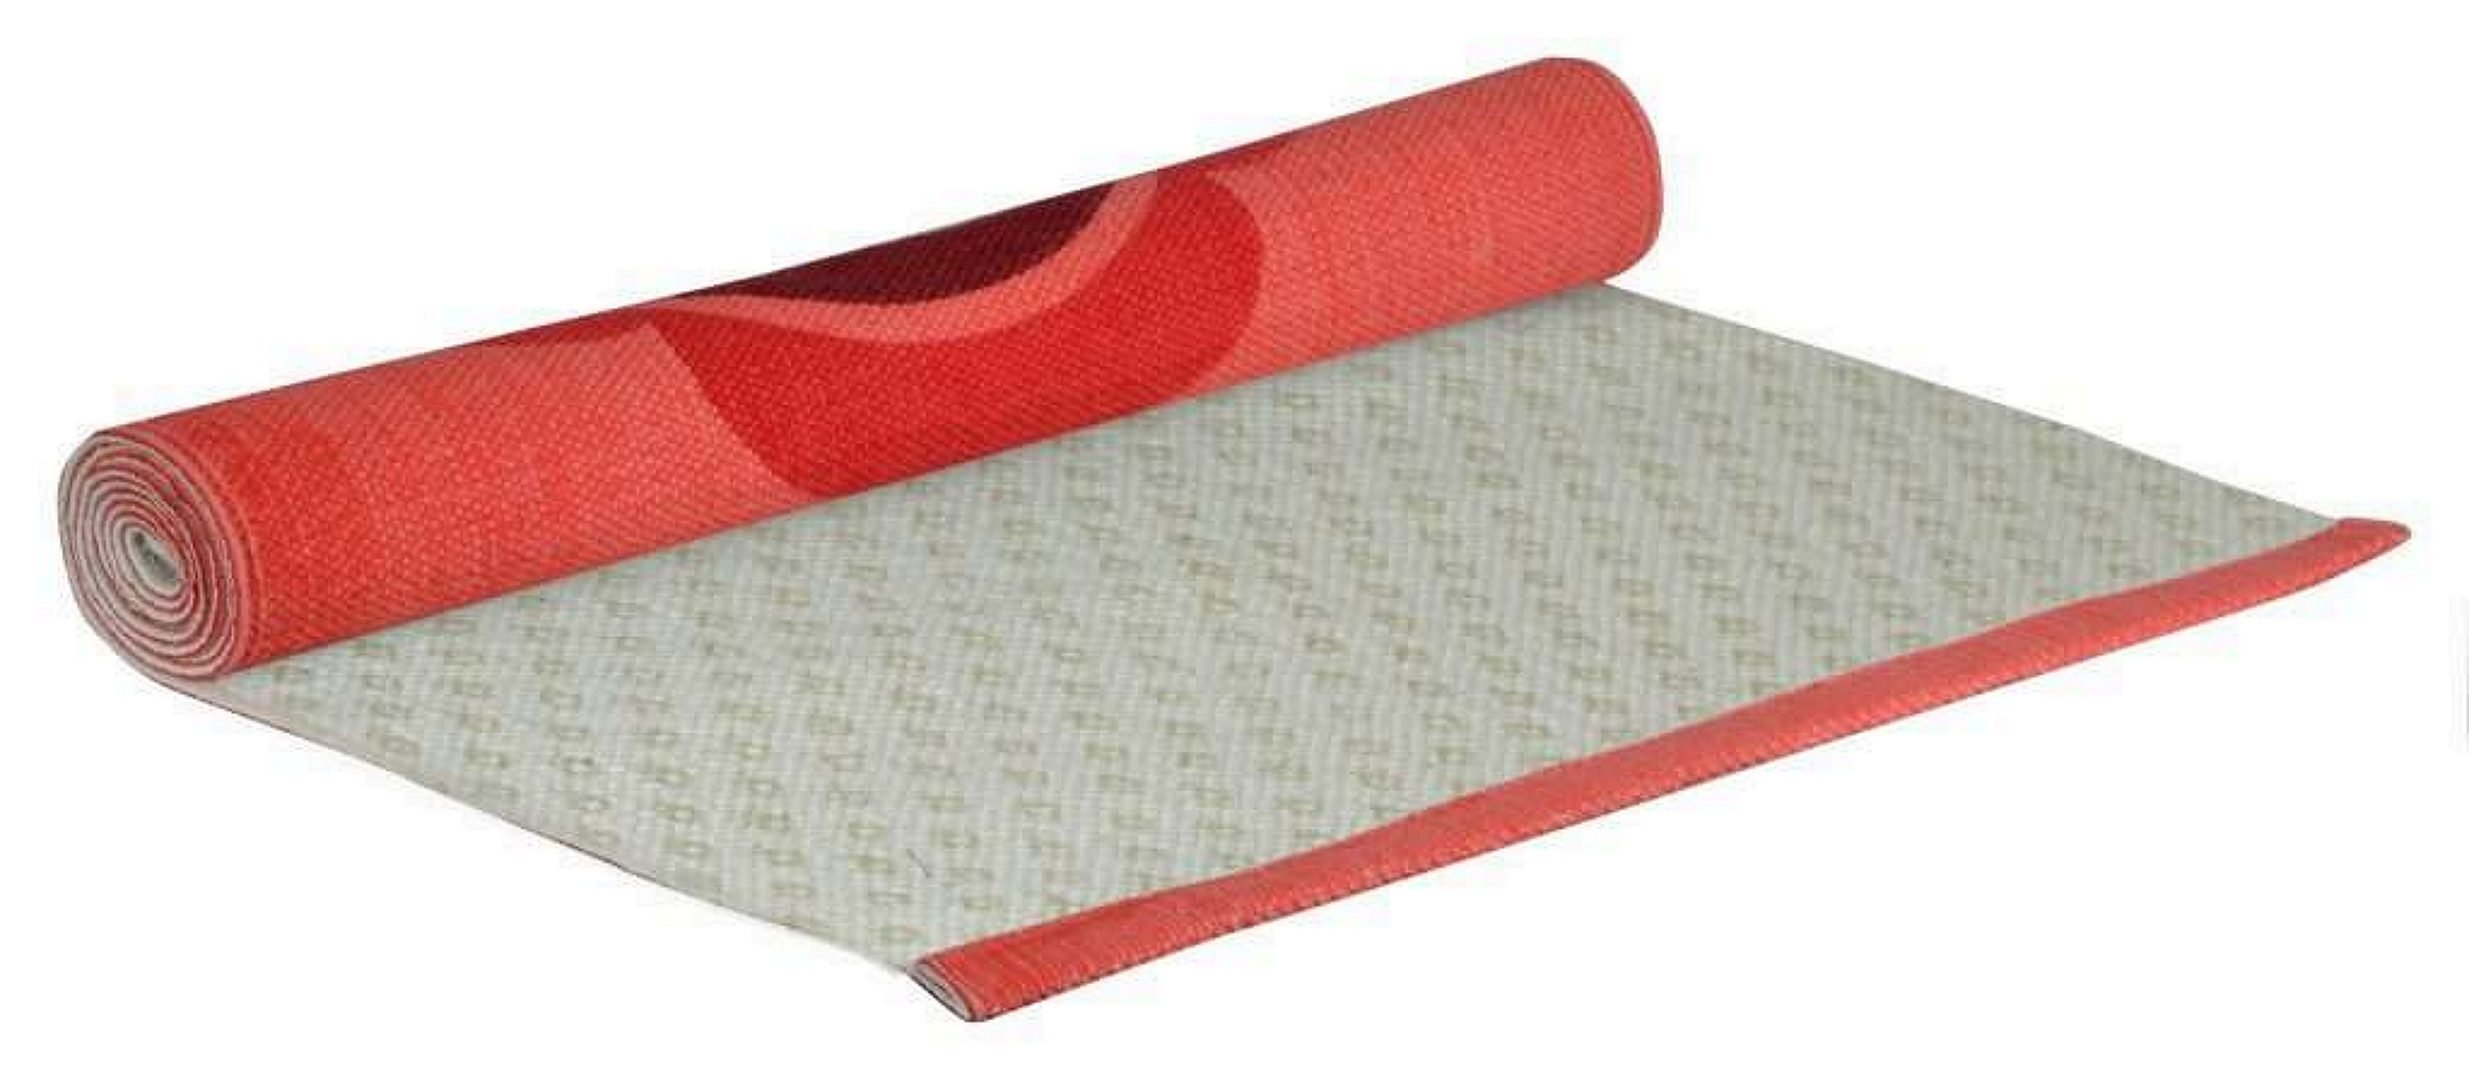 Cotton Yoga Mat, red